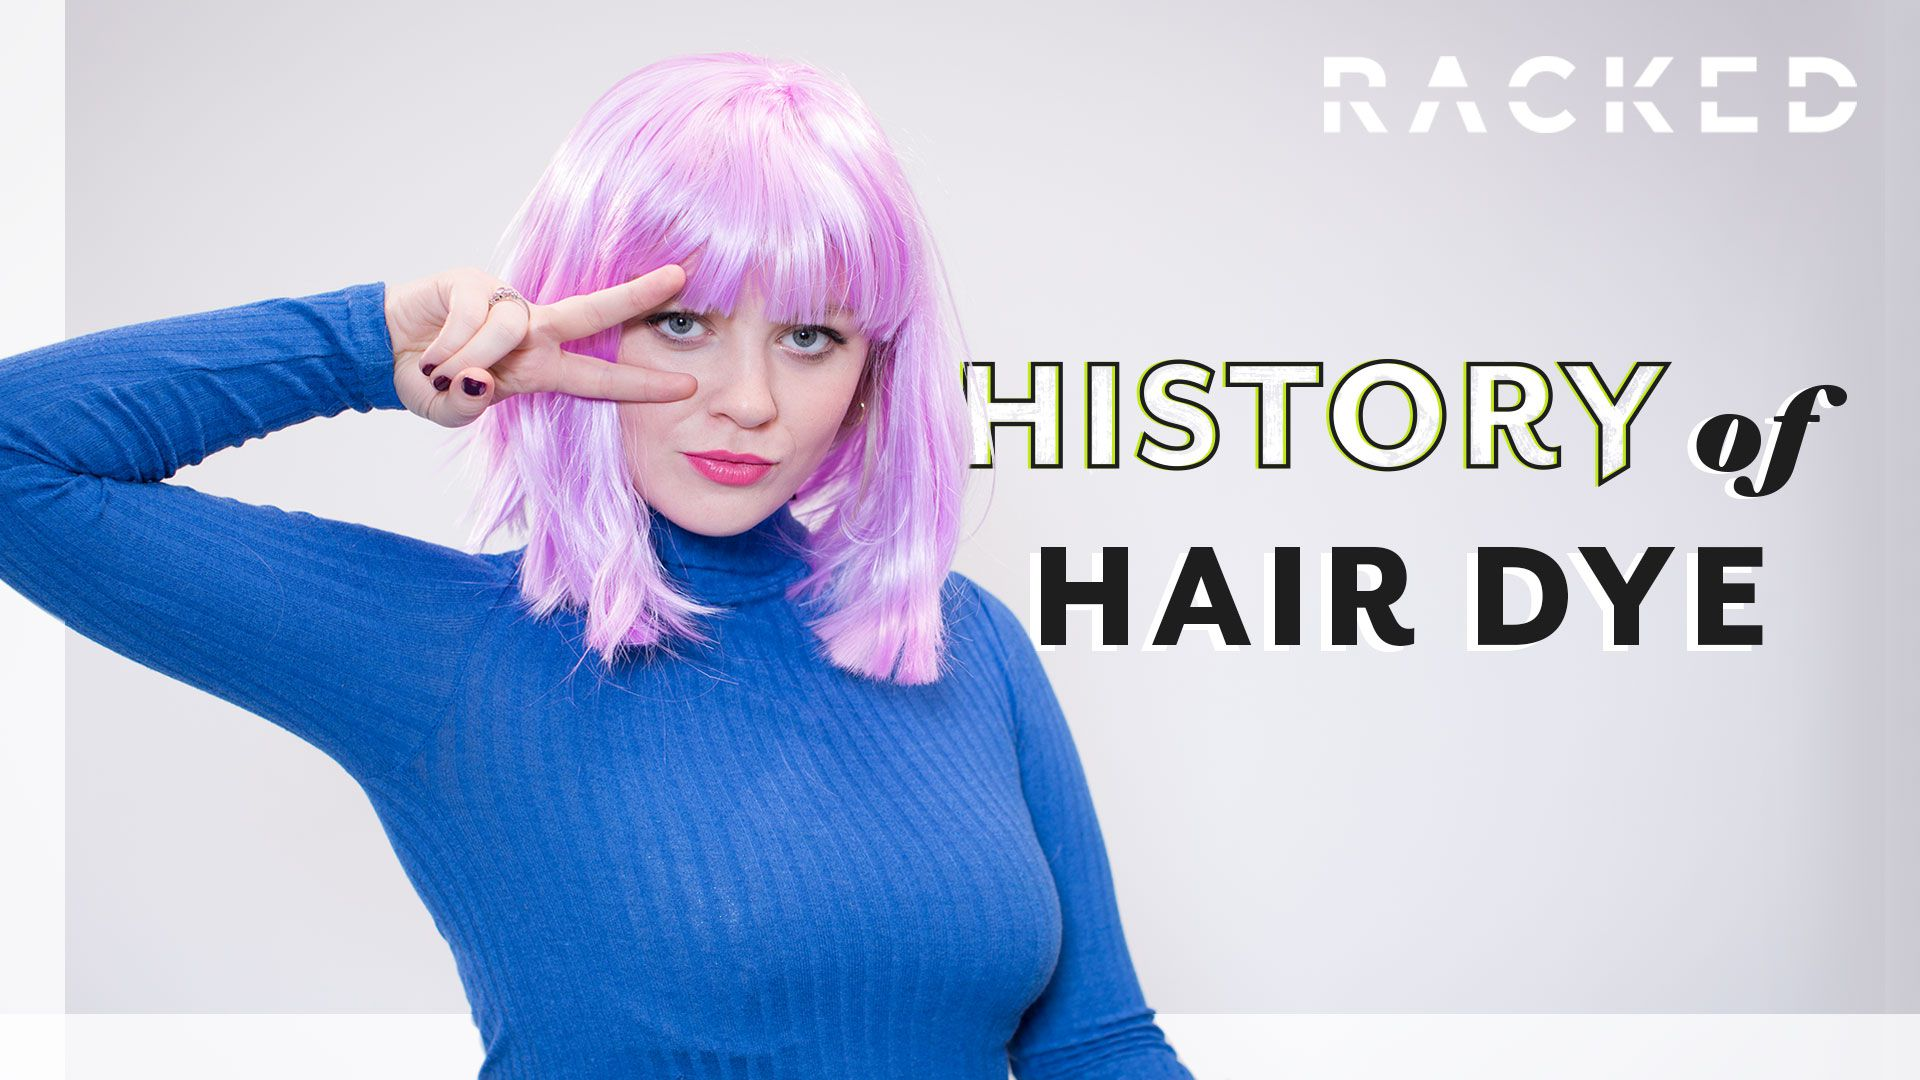 The History of Hair Dye Has Always Been a Little Dangerous - Racked